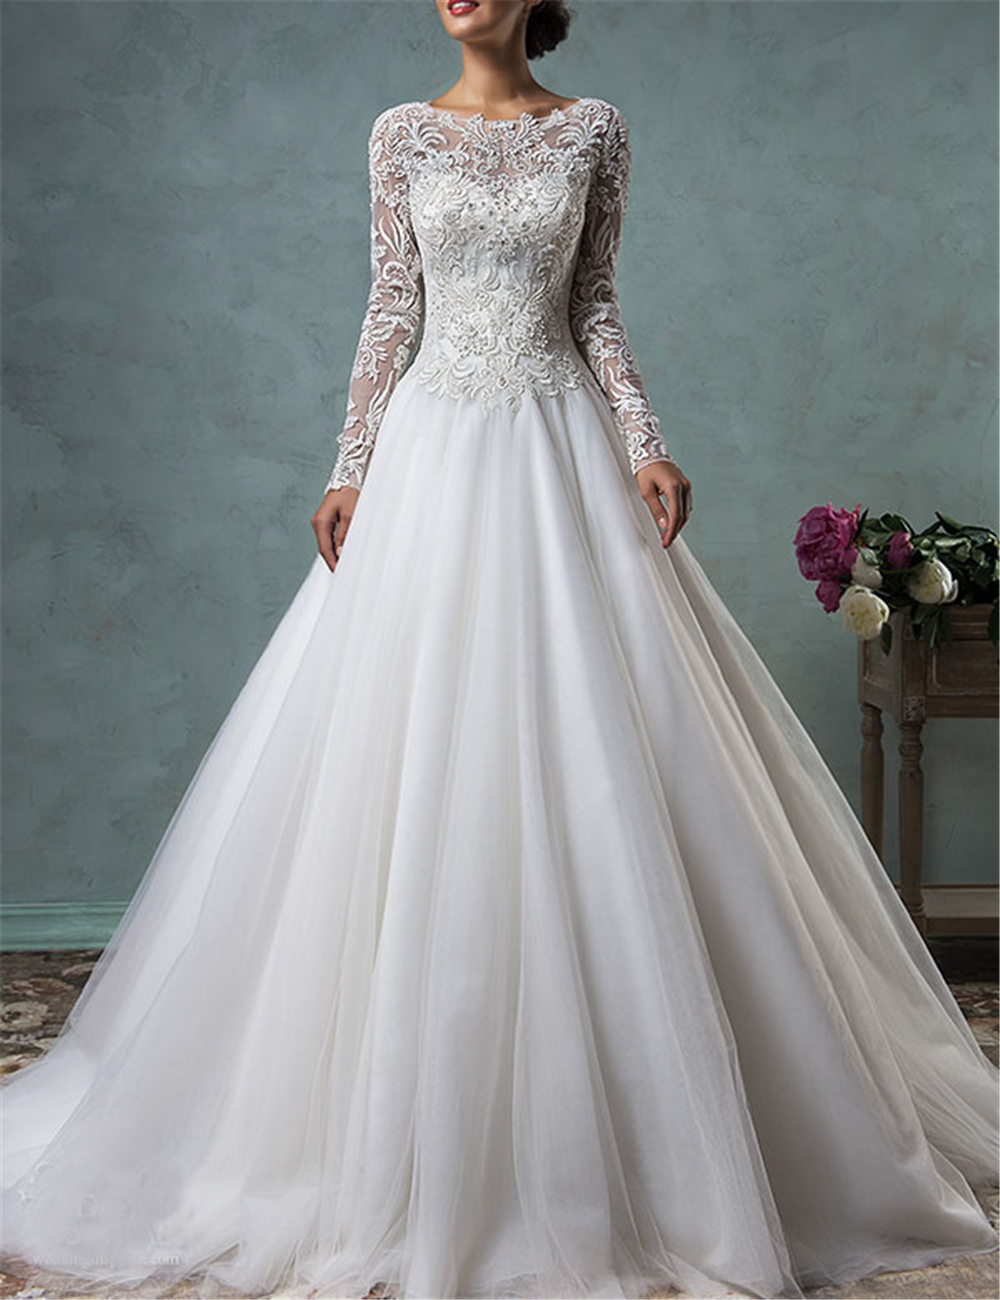 Wedding Dress Styles Embroidery Appliques Beading Soft Tulle Beaded Vestidos De Novia Princess Bridal Gown Custo-Made